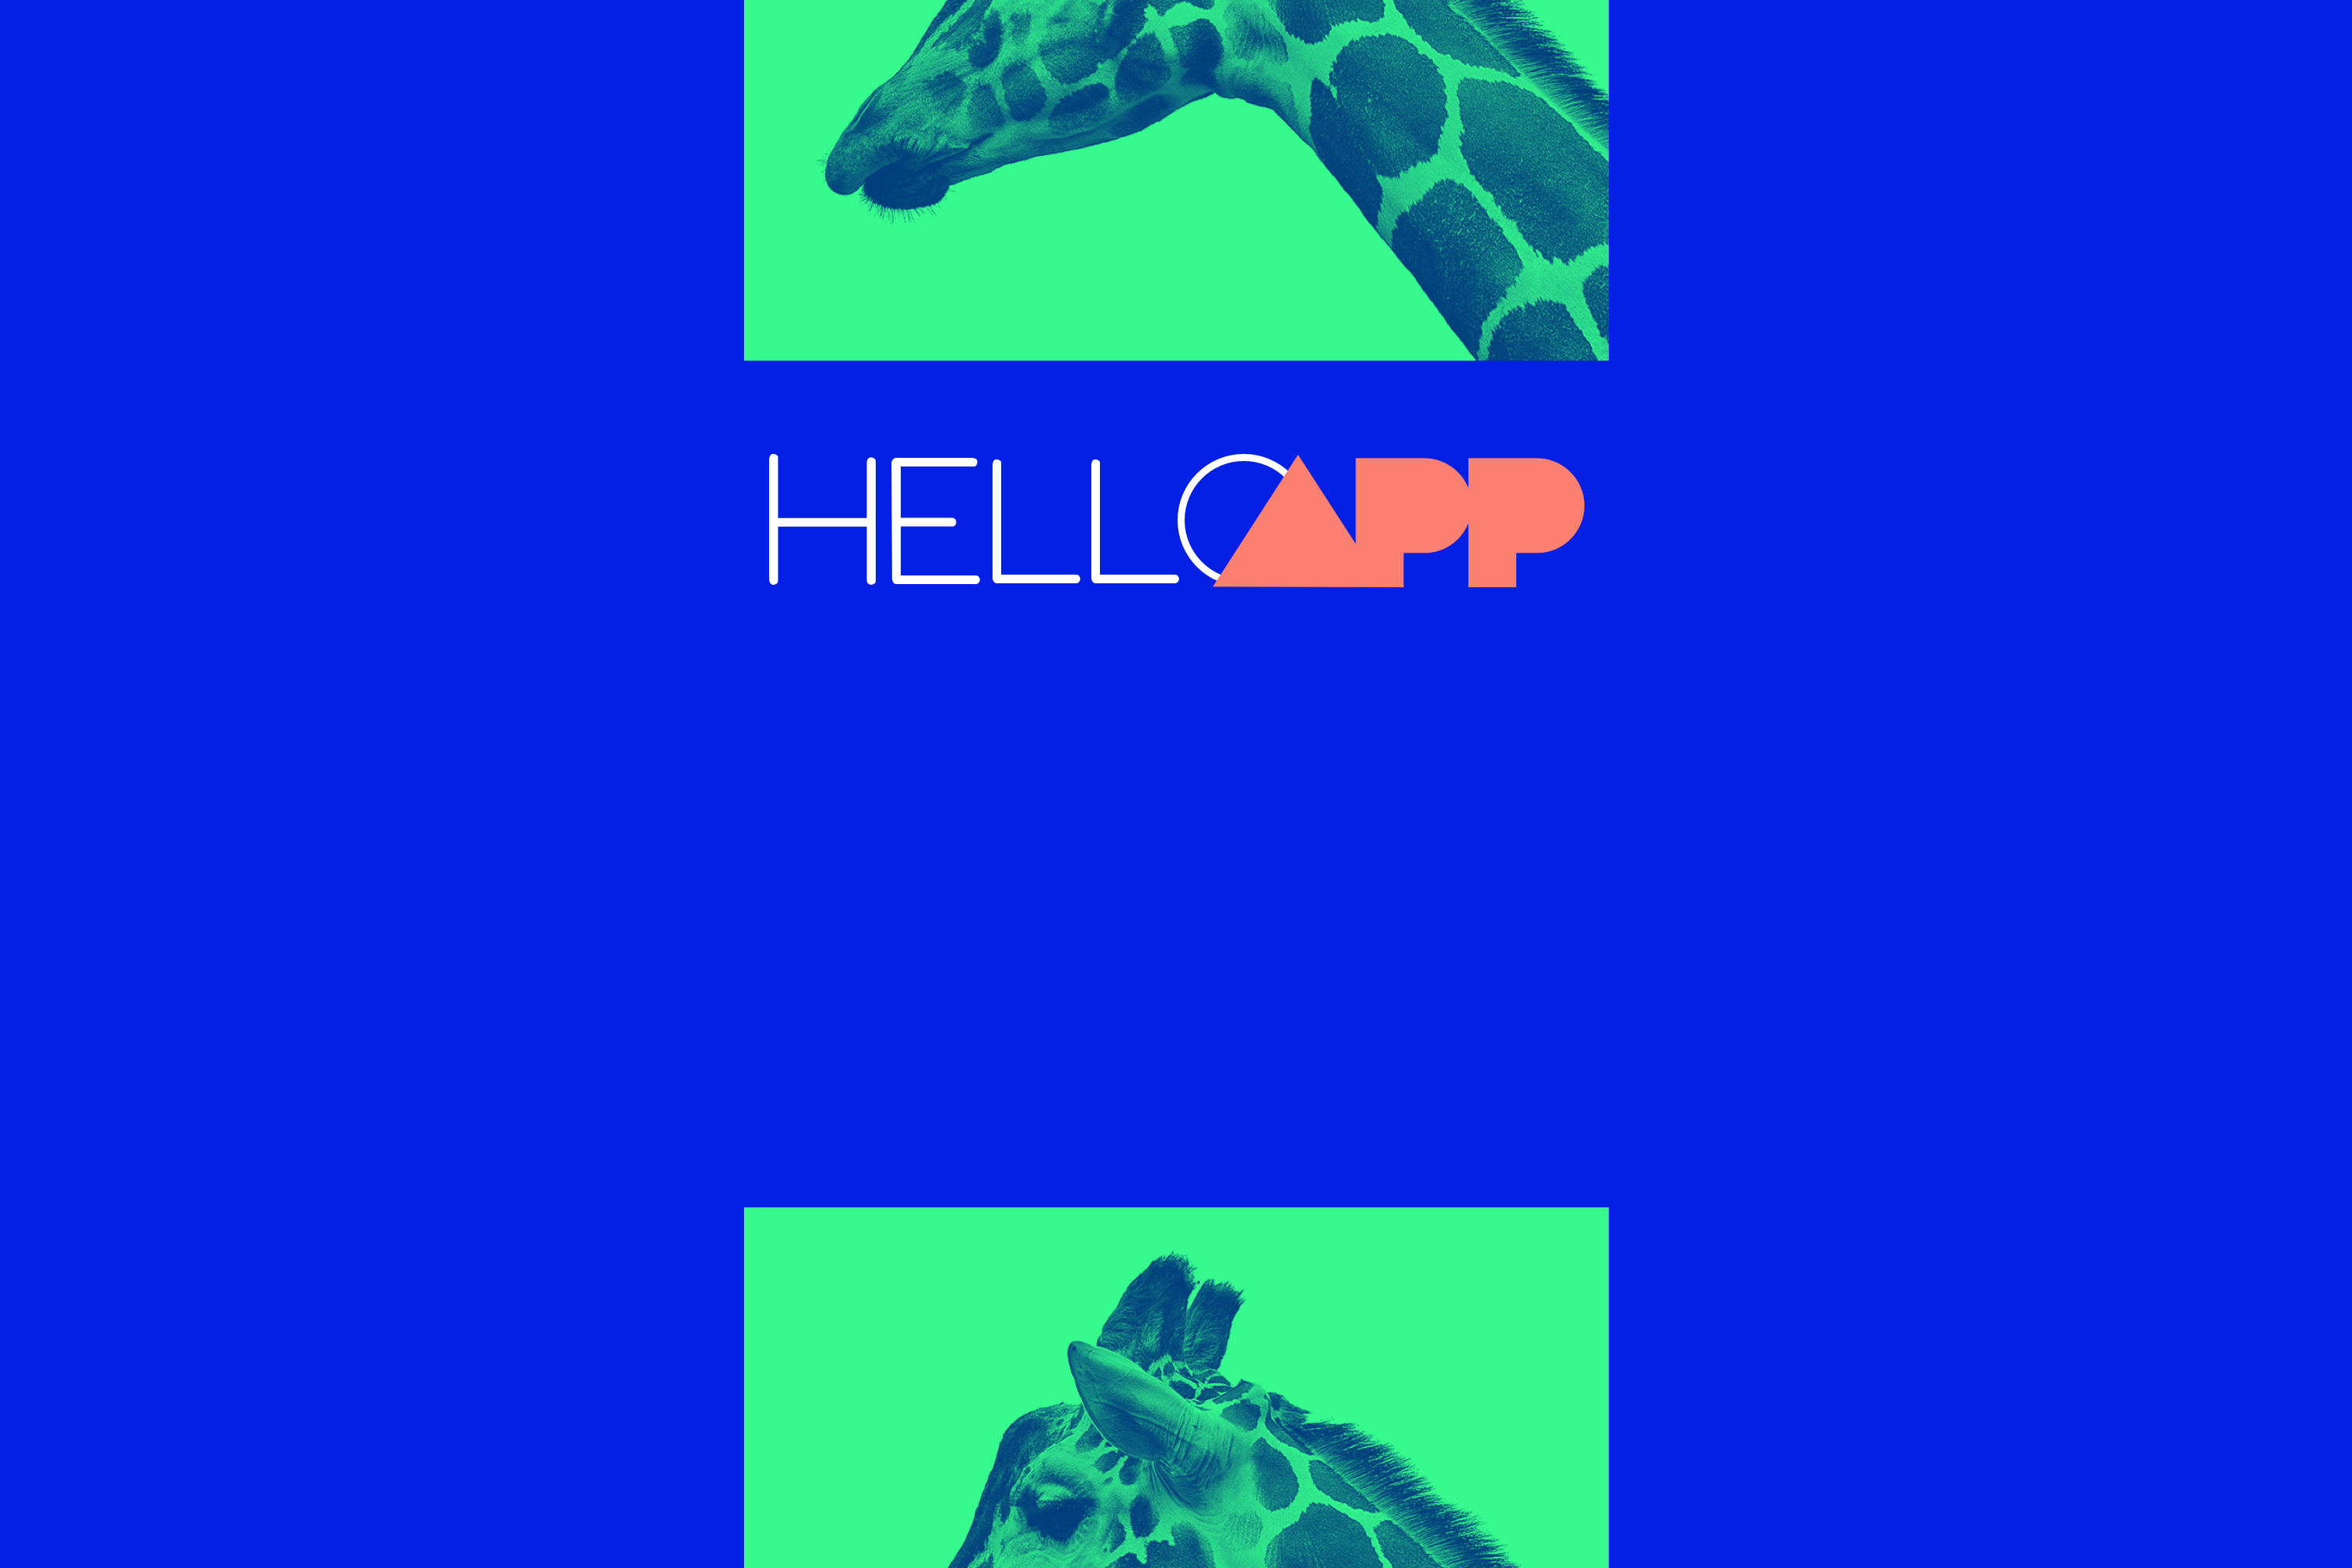 Mobile Summer Becomes Hello App